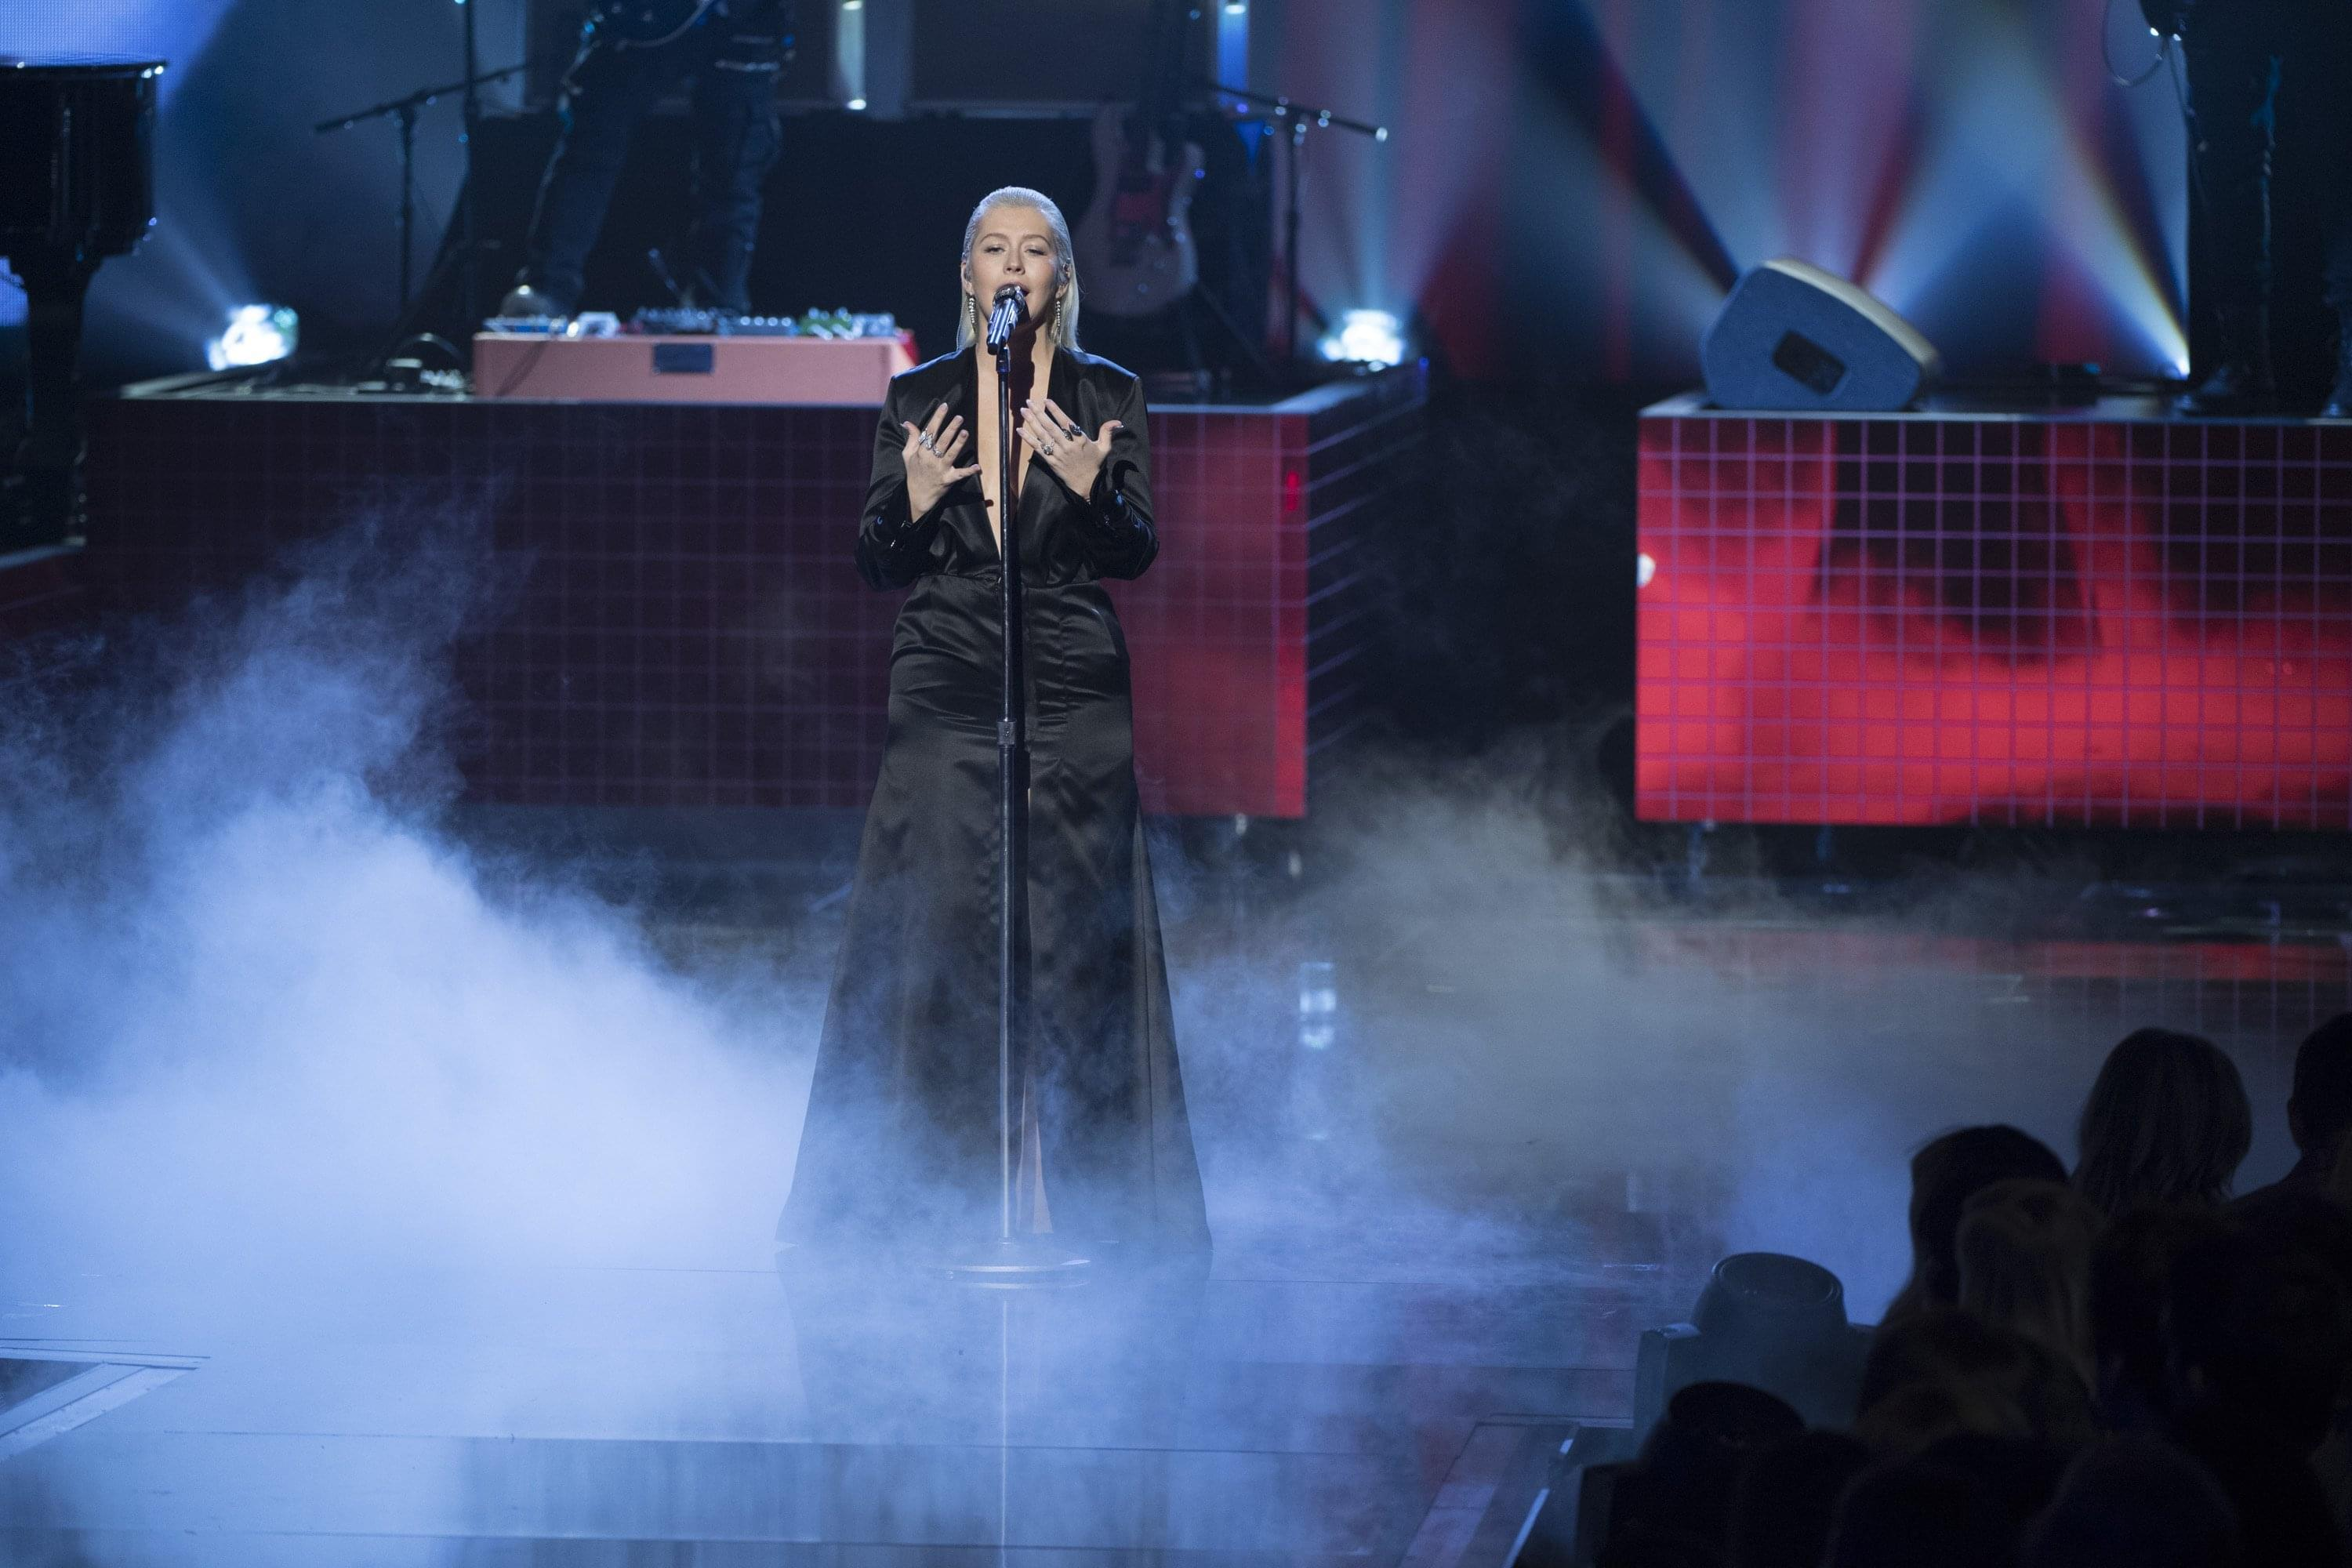 Christina Aguilera and Demi Lovato Will Perform New Song 'Fall in Line' at Billboard Music Awards